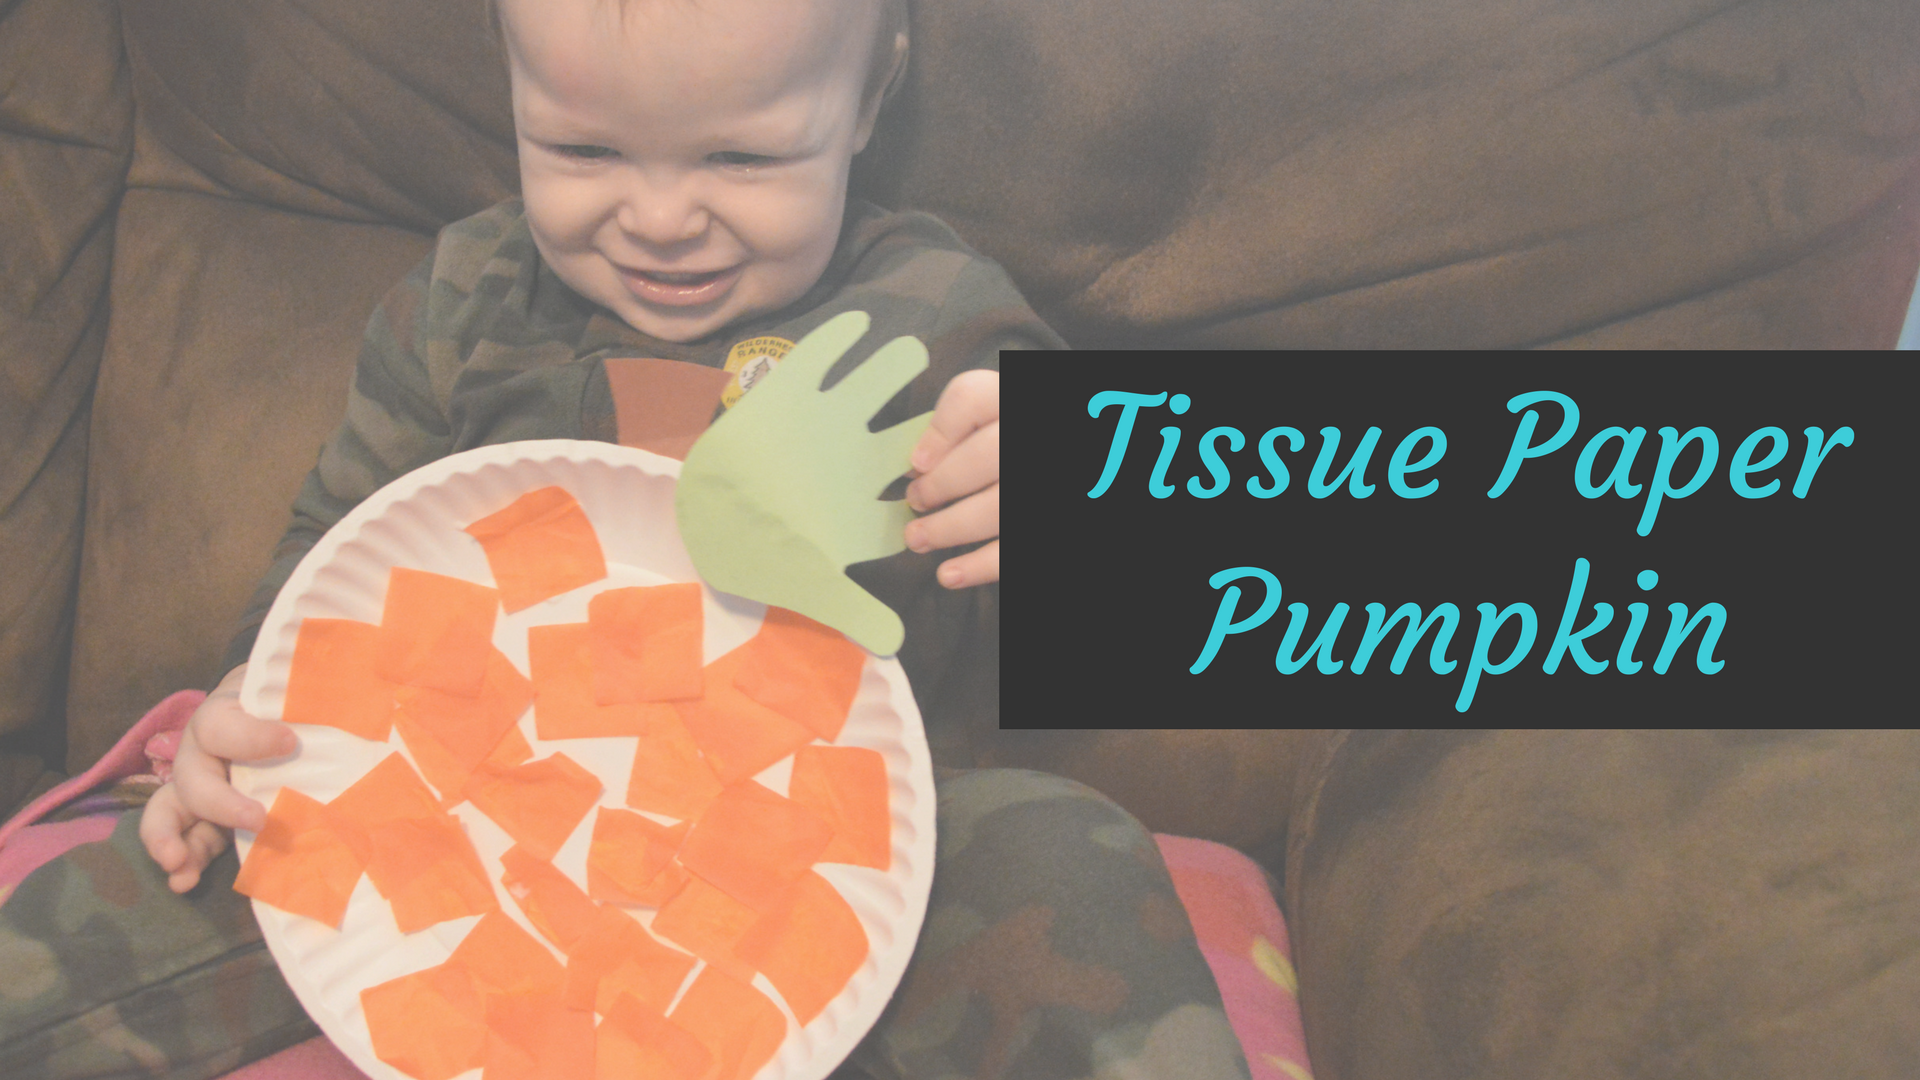 Tissue Paper Pumpkin - a fun and easy fall craft